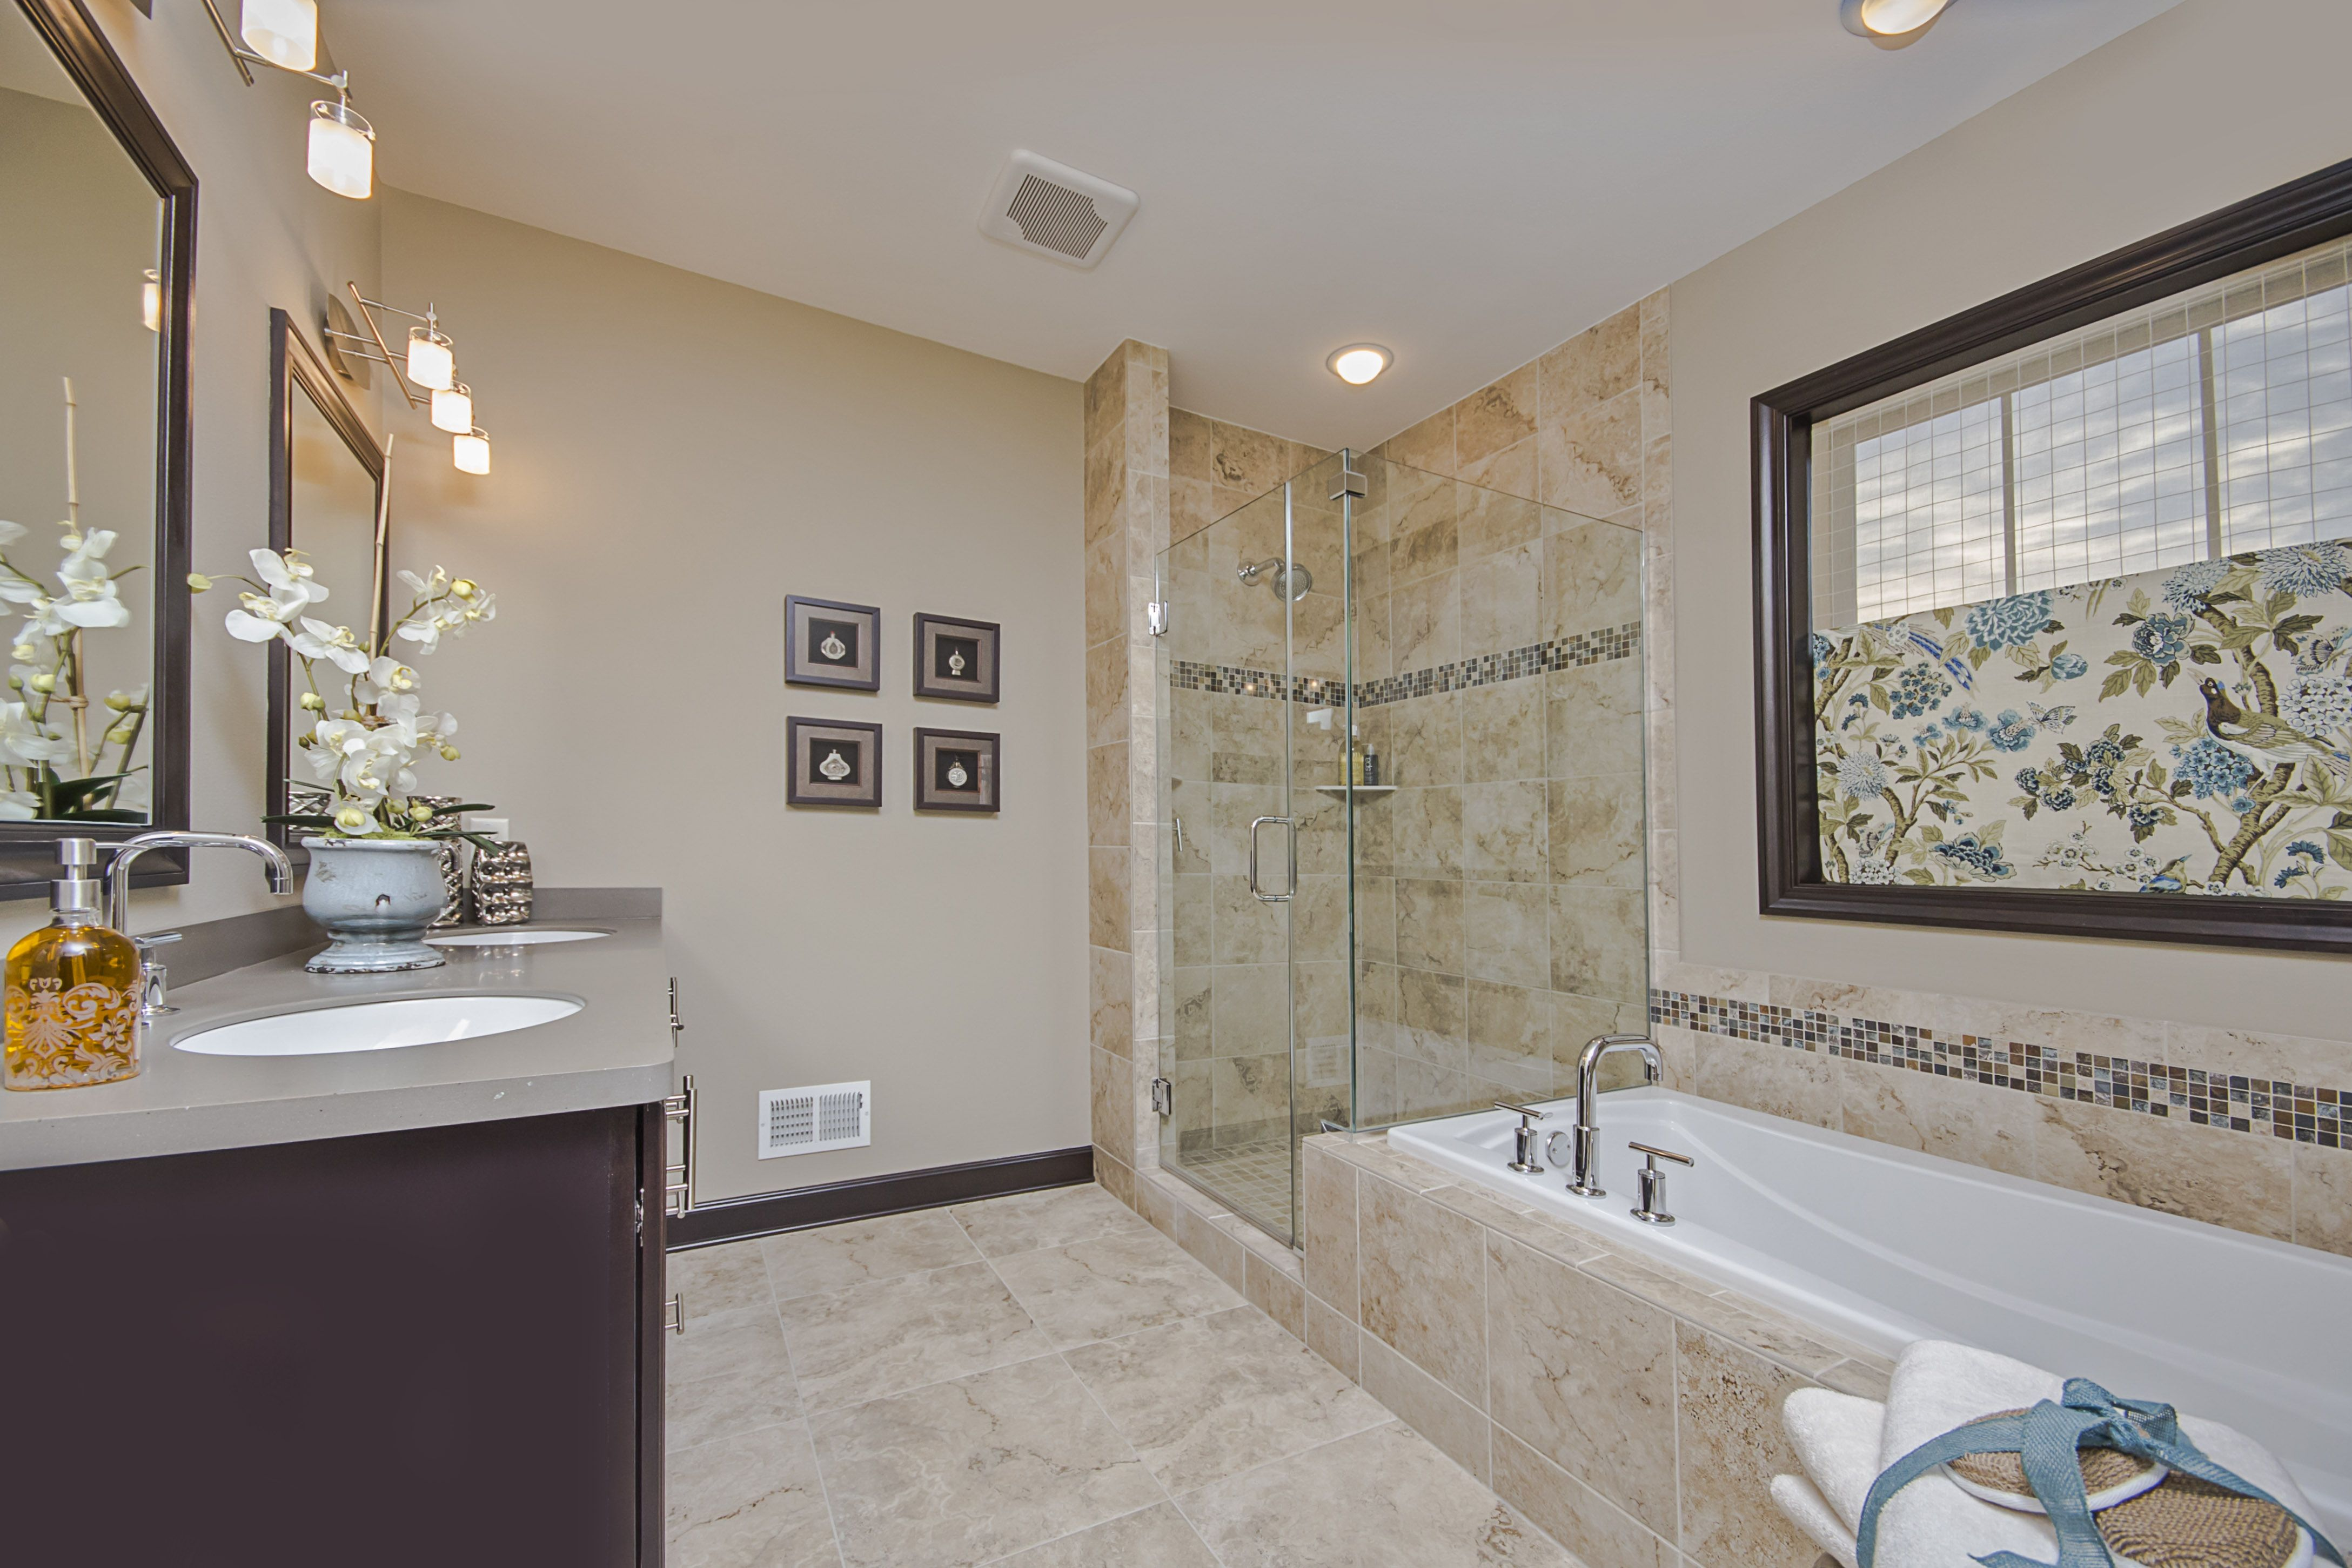 Owner's bathroom. Stafford model home at Victoria Station, Pewaukee, WI. 2014 Southeastern Wisconsin Parade of Homes. http://www.homesbytowne.com/states/wisconsin.html